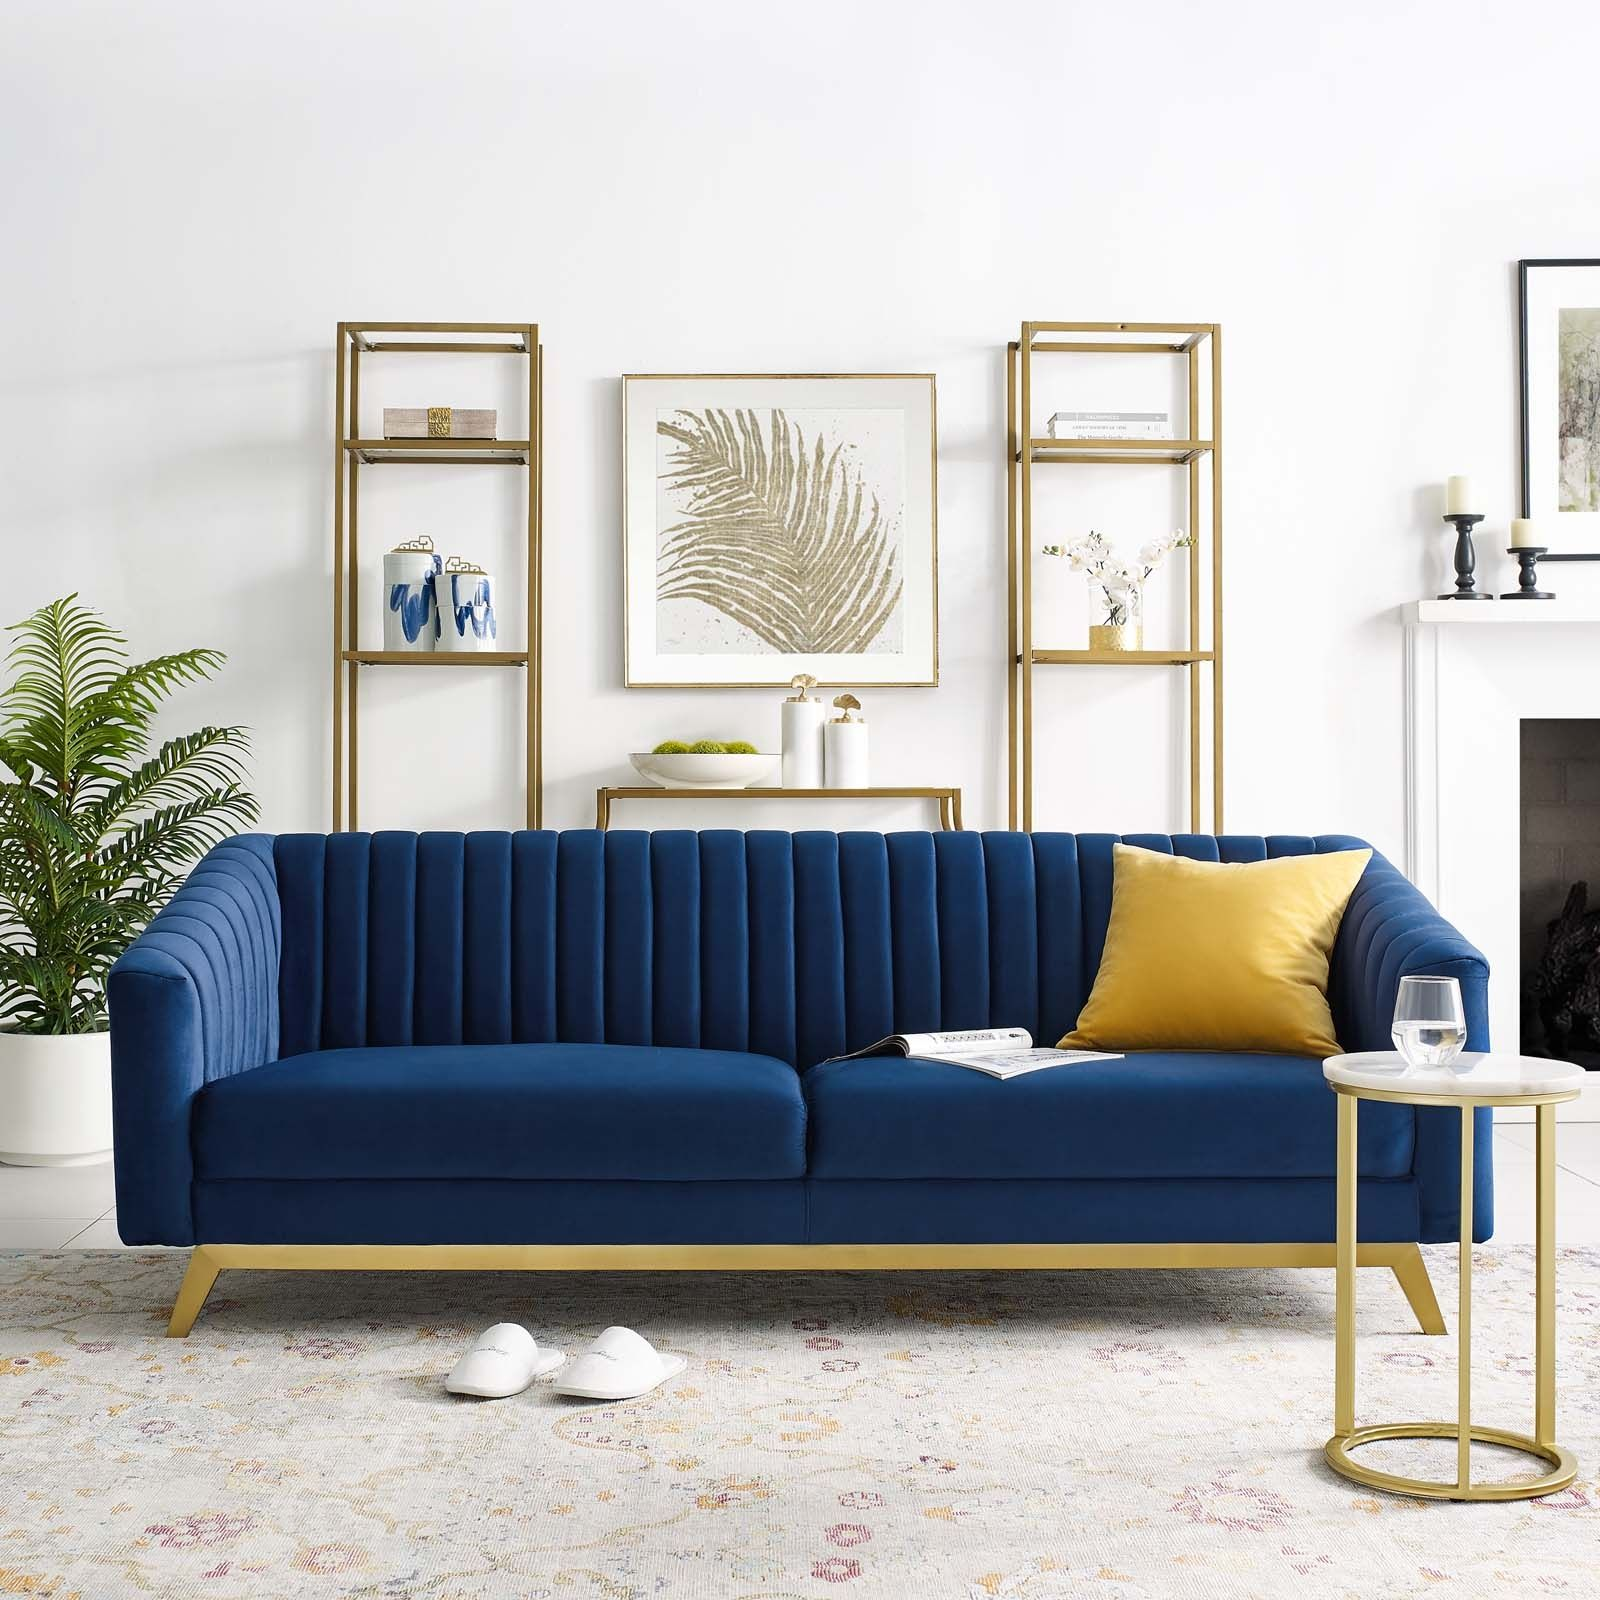 Pin By Kerry Mauri On Living Room In 2020 Blue Sofas Living Room Blue Velvet Sofa Living Room Blue Sofa Living